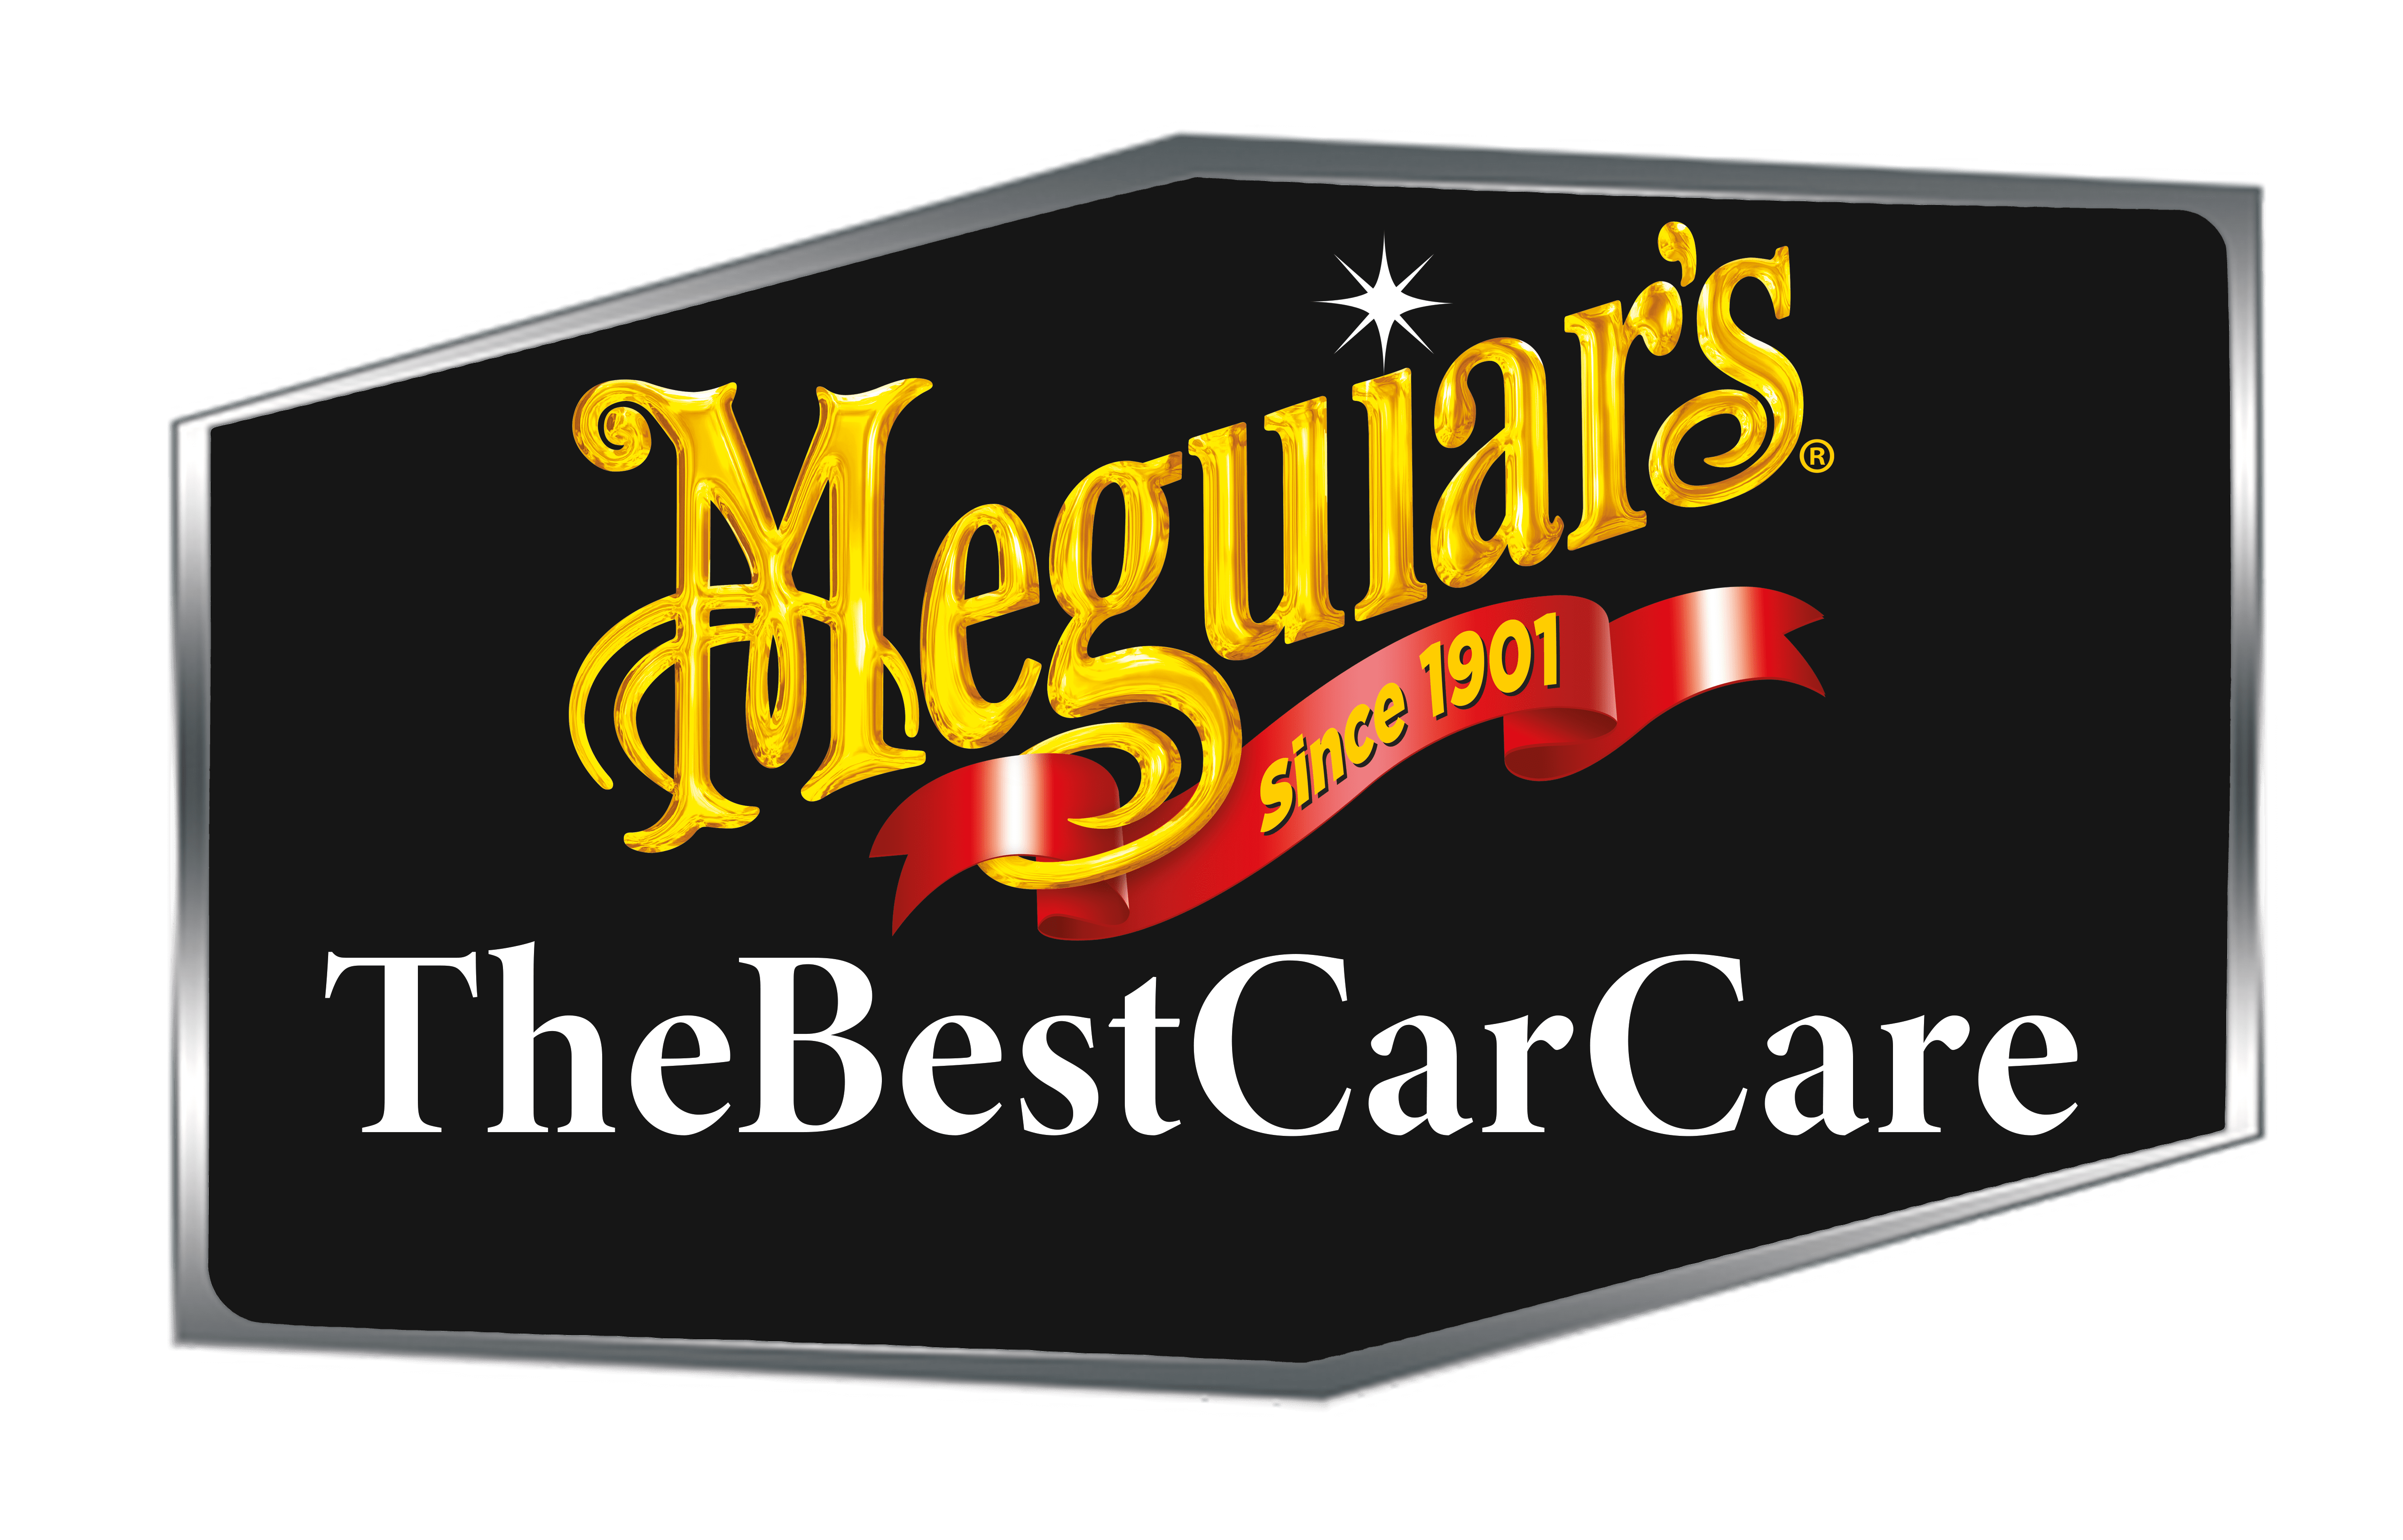 TheBestCarCare